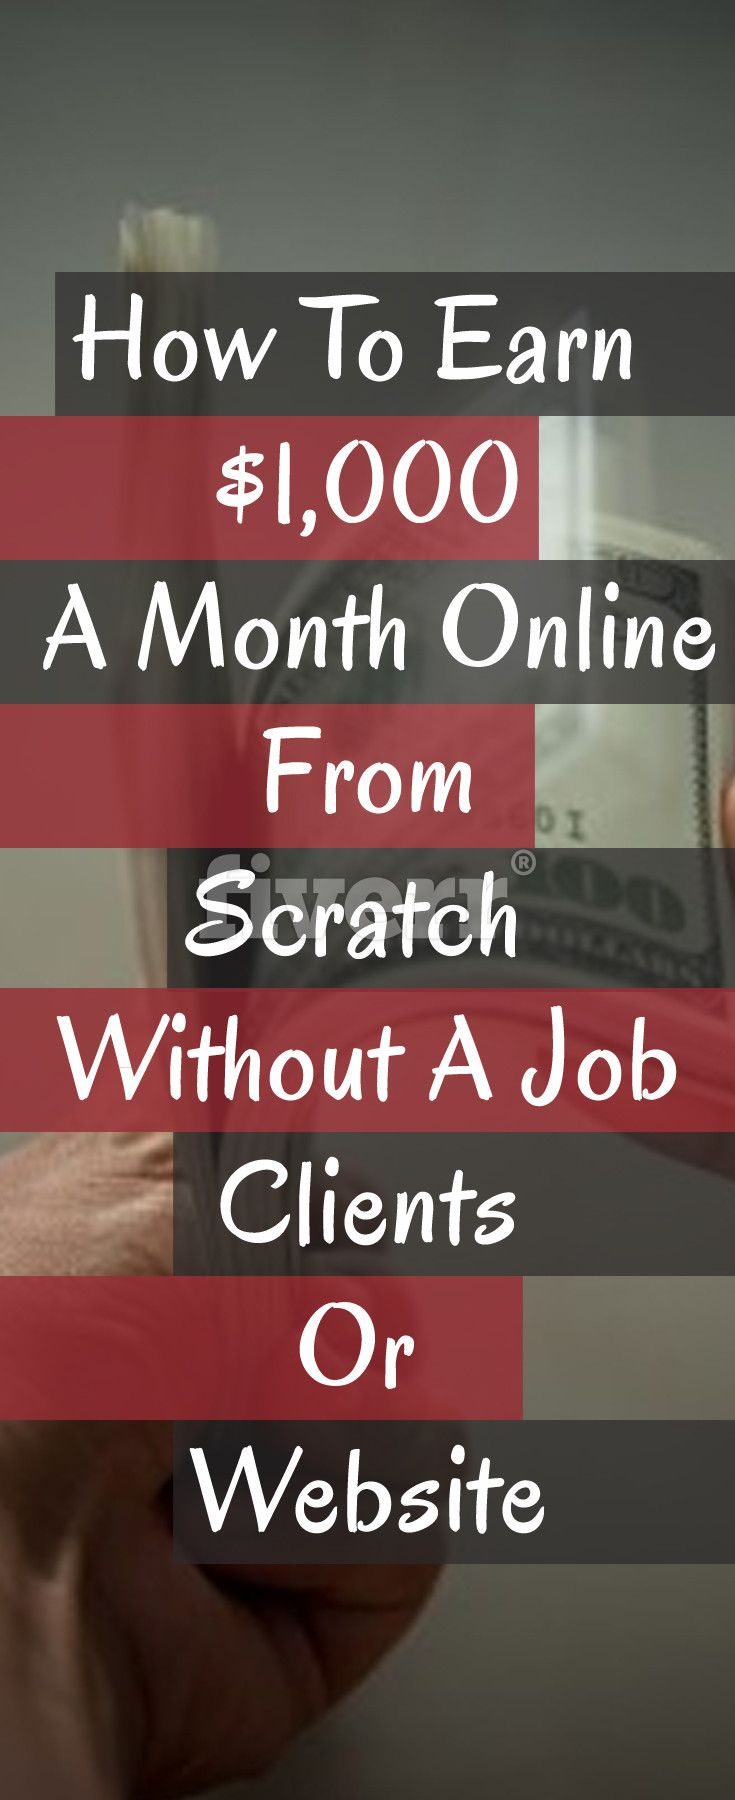 How To Earn $1,000 A Month Online From Scratch Without A Job, Clients, Or Website make money fast | quick ways to make money | quick ways to make extra cash | extra income ideas | extra income ideas from home | side hustle ideas for introverts #makemoneyonline #makemoney #surveys